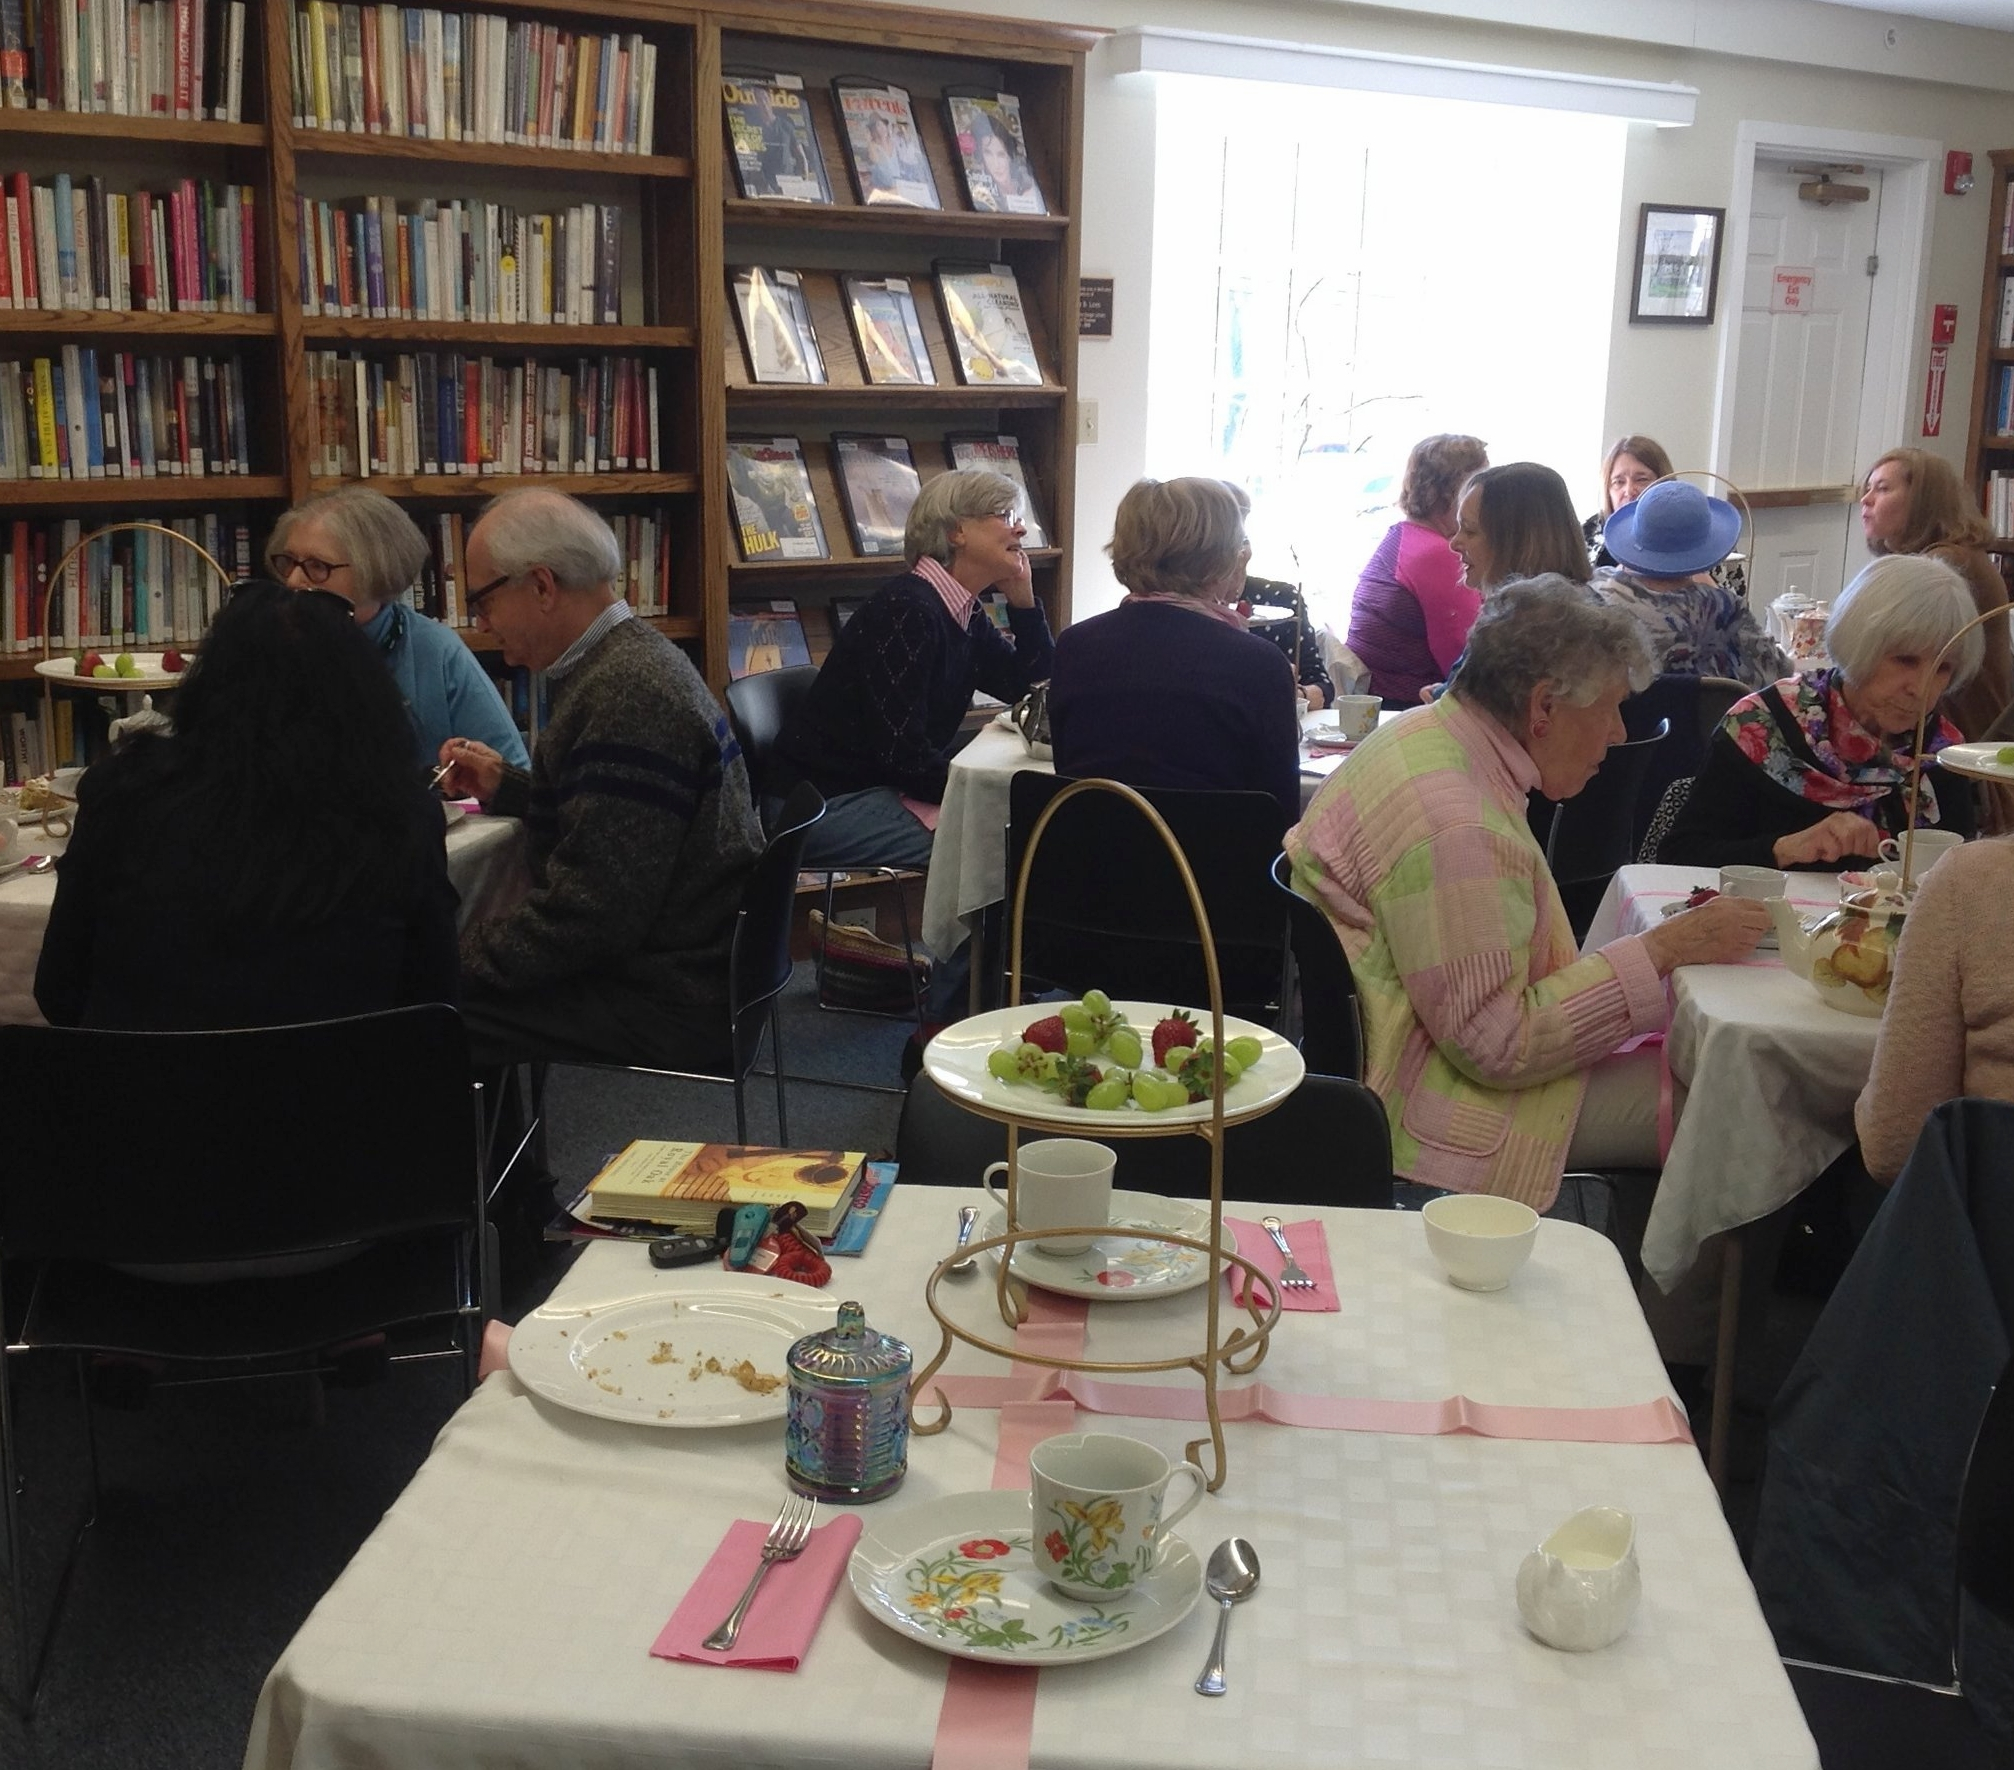 French Impressionist's Tea at Sturgis Library (photo by Antonia Stephens)